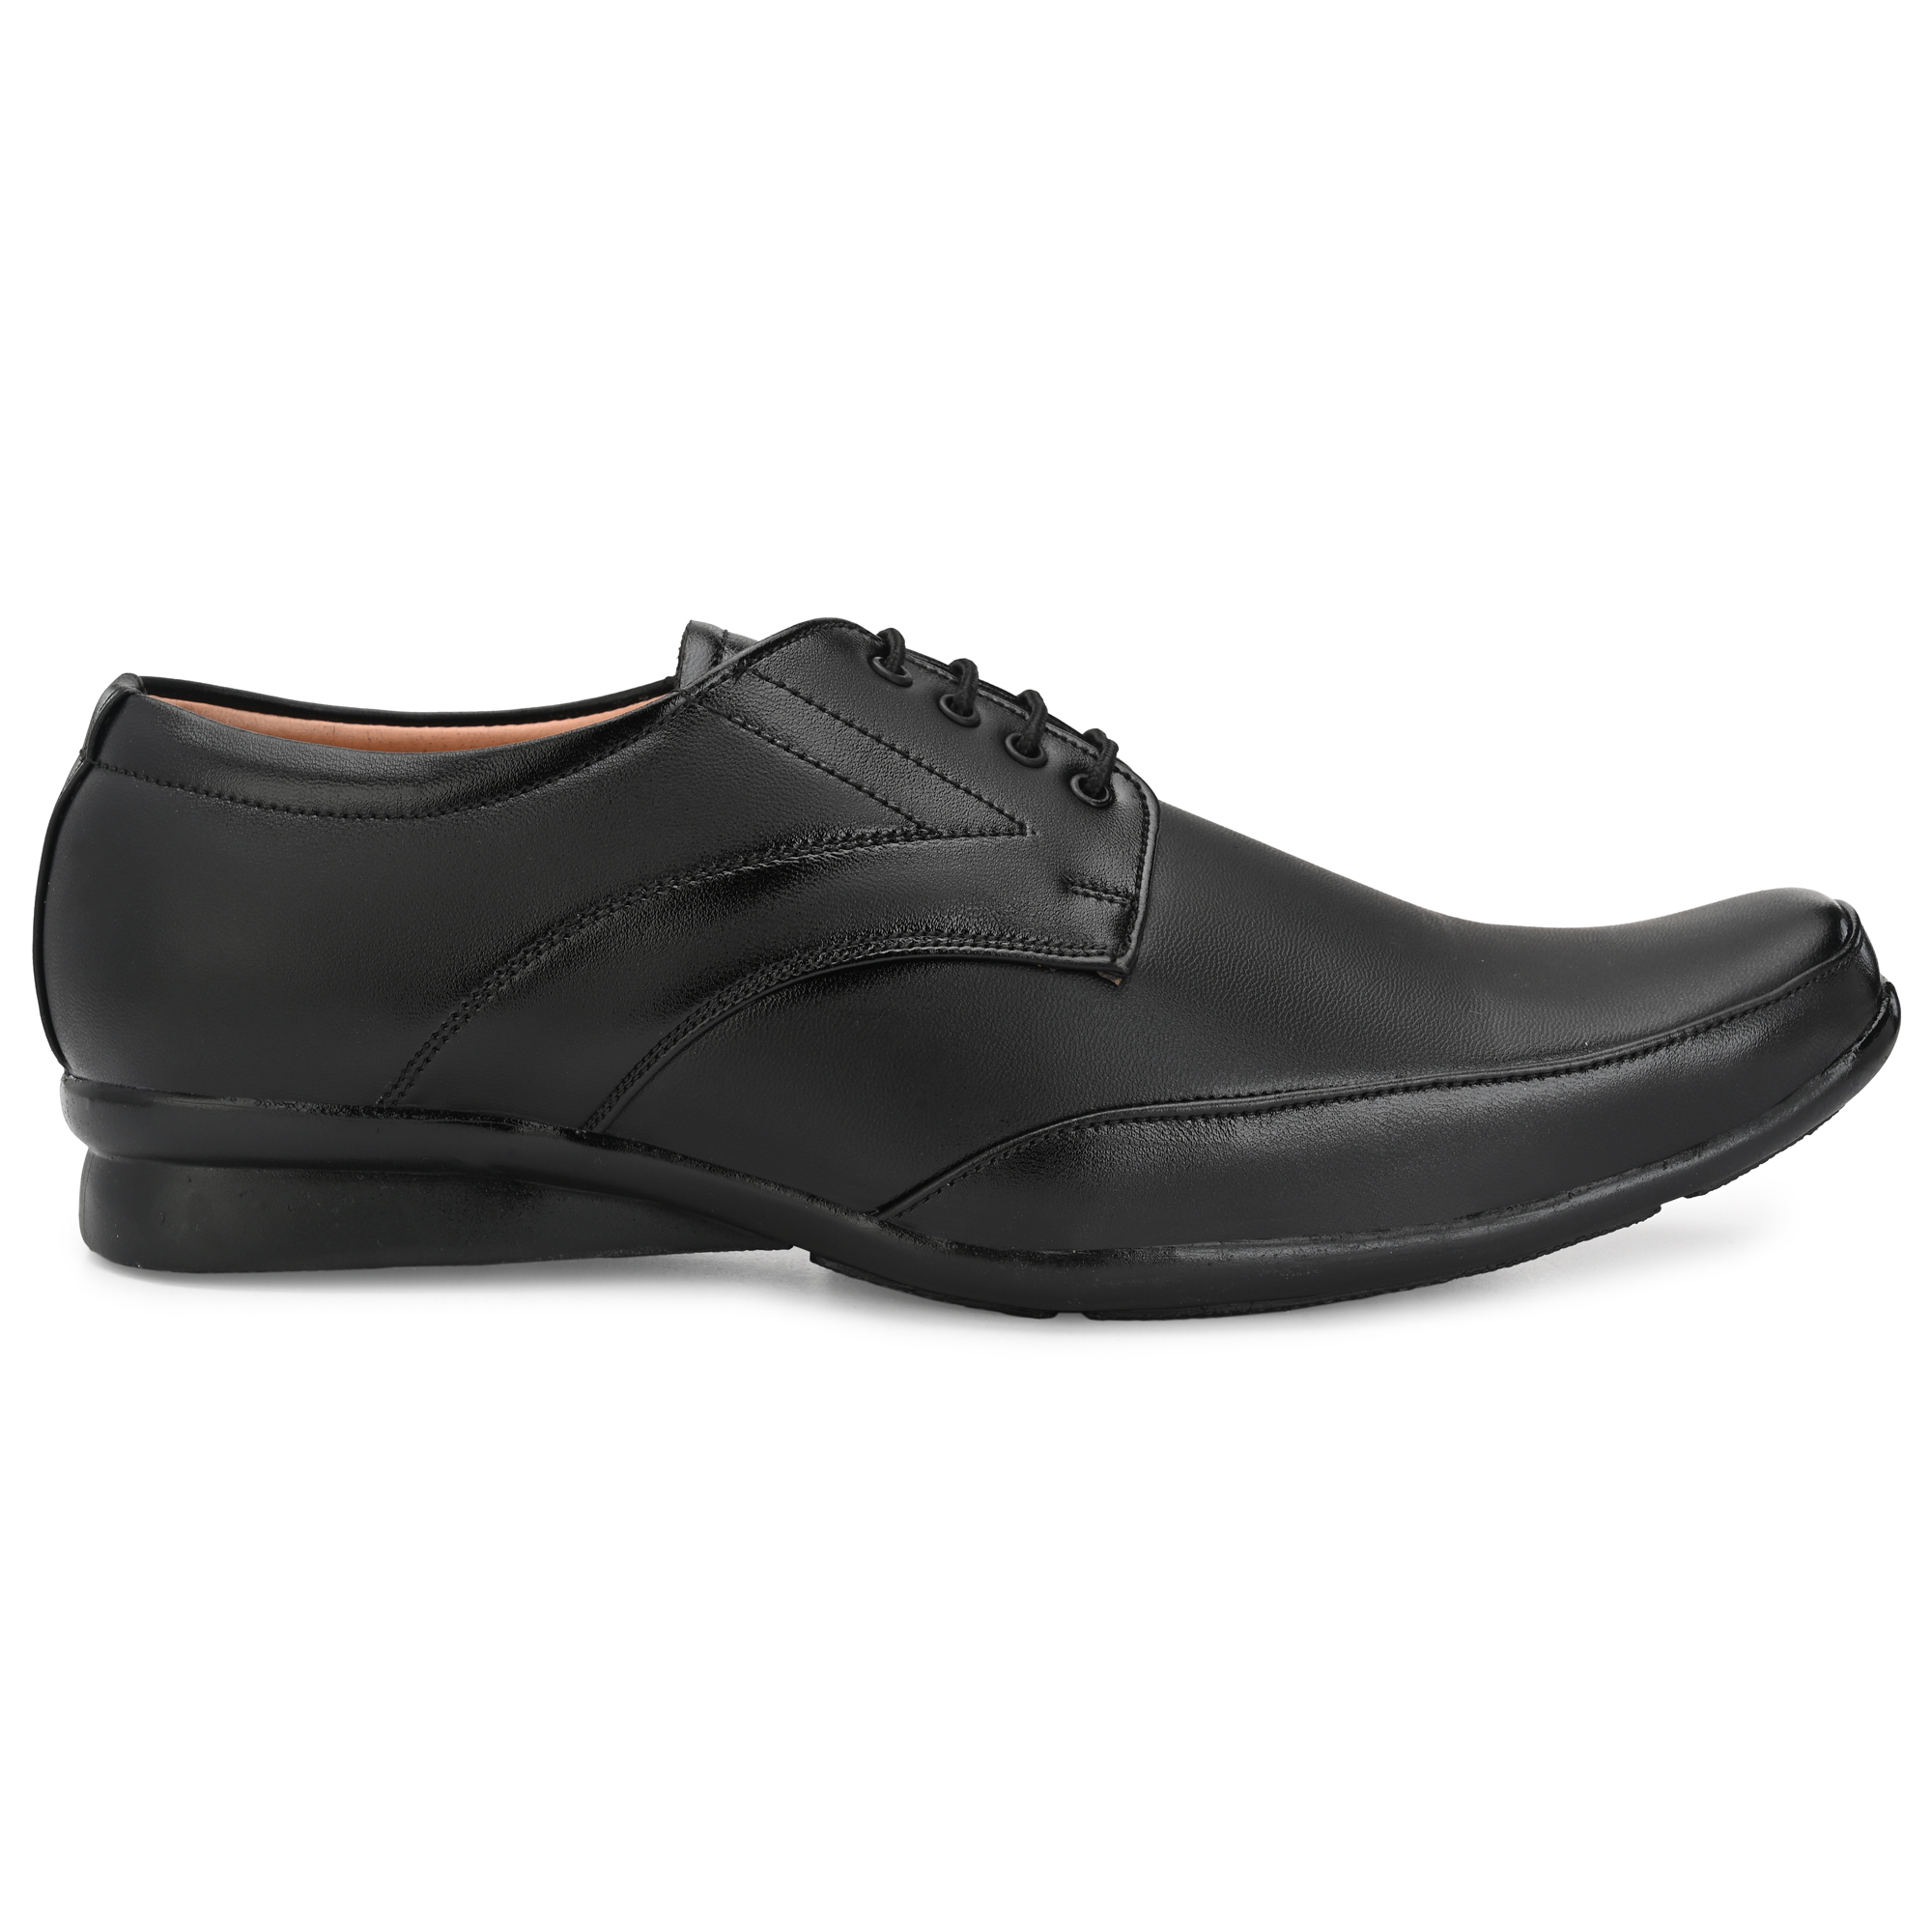 Dazzer 432 Lace Up Synthetic Formal Shoes For Men 432Black. (Black, 6-10, 8 PAIR)